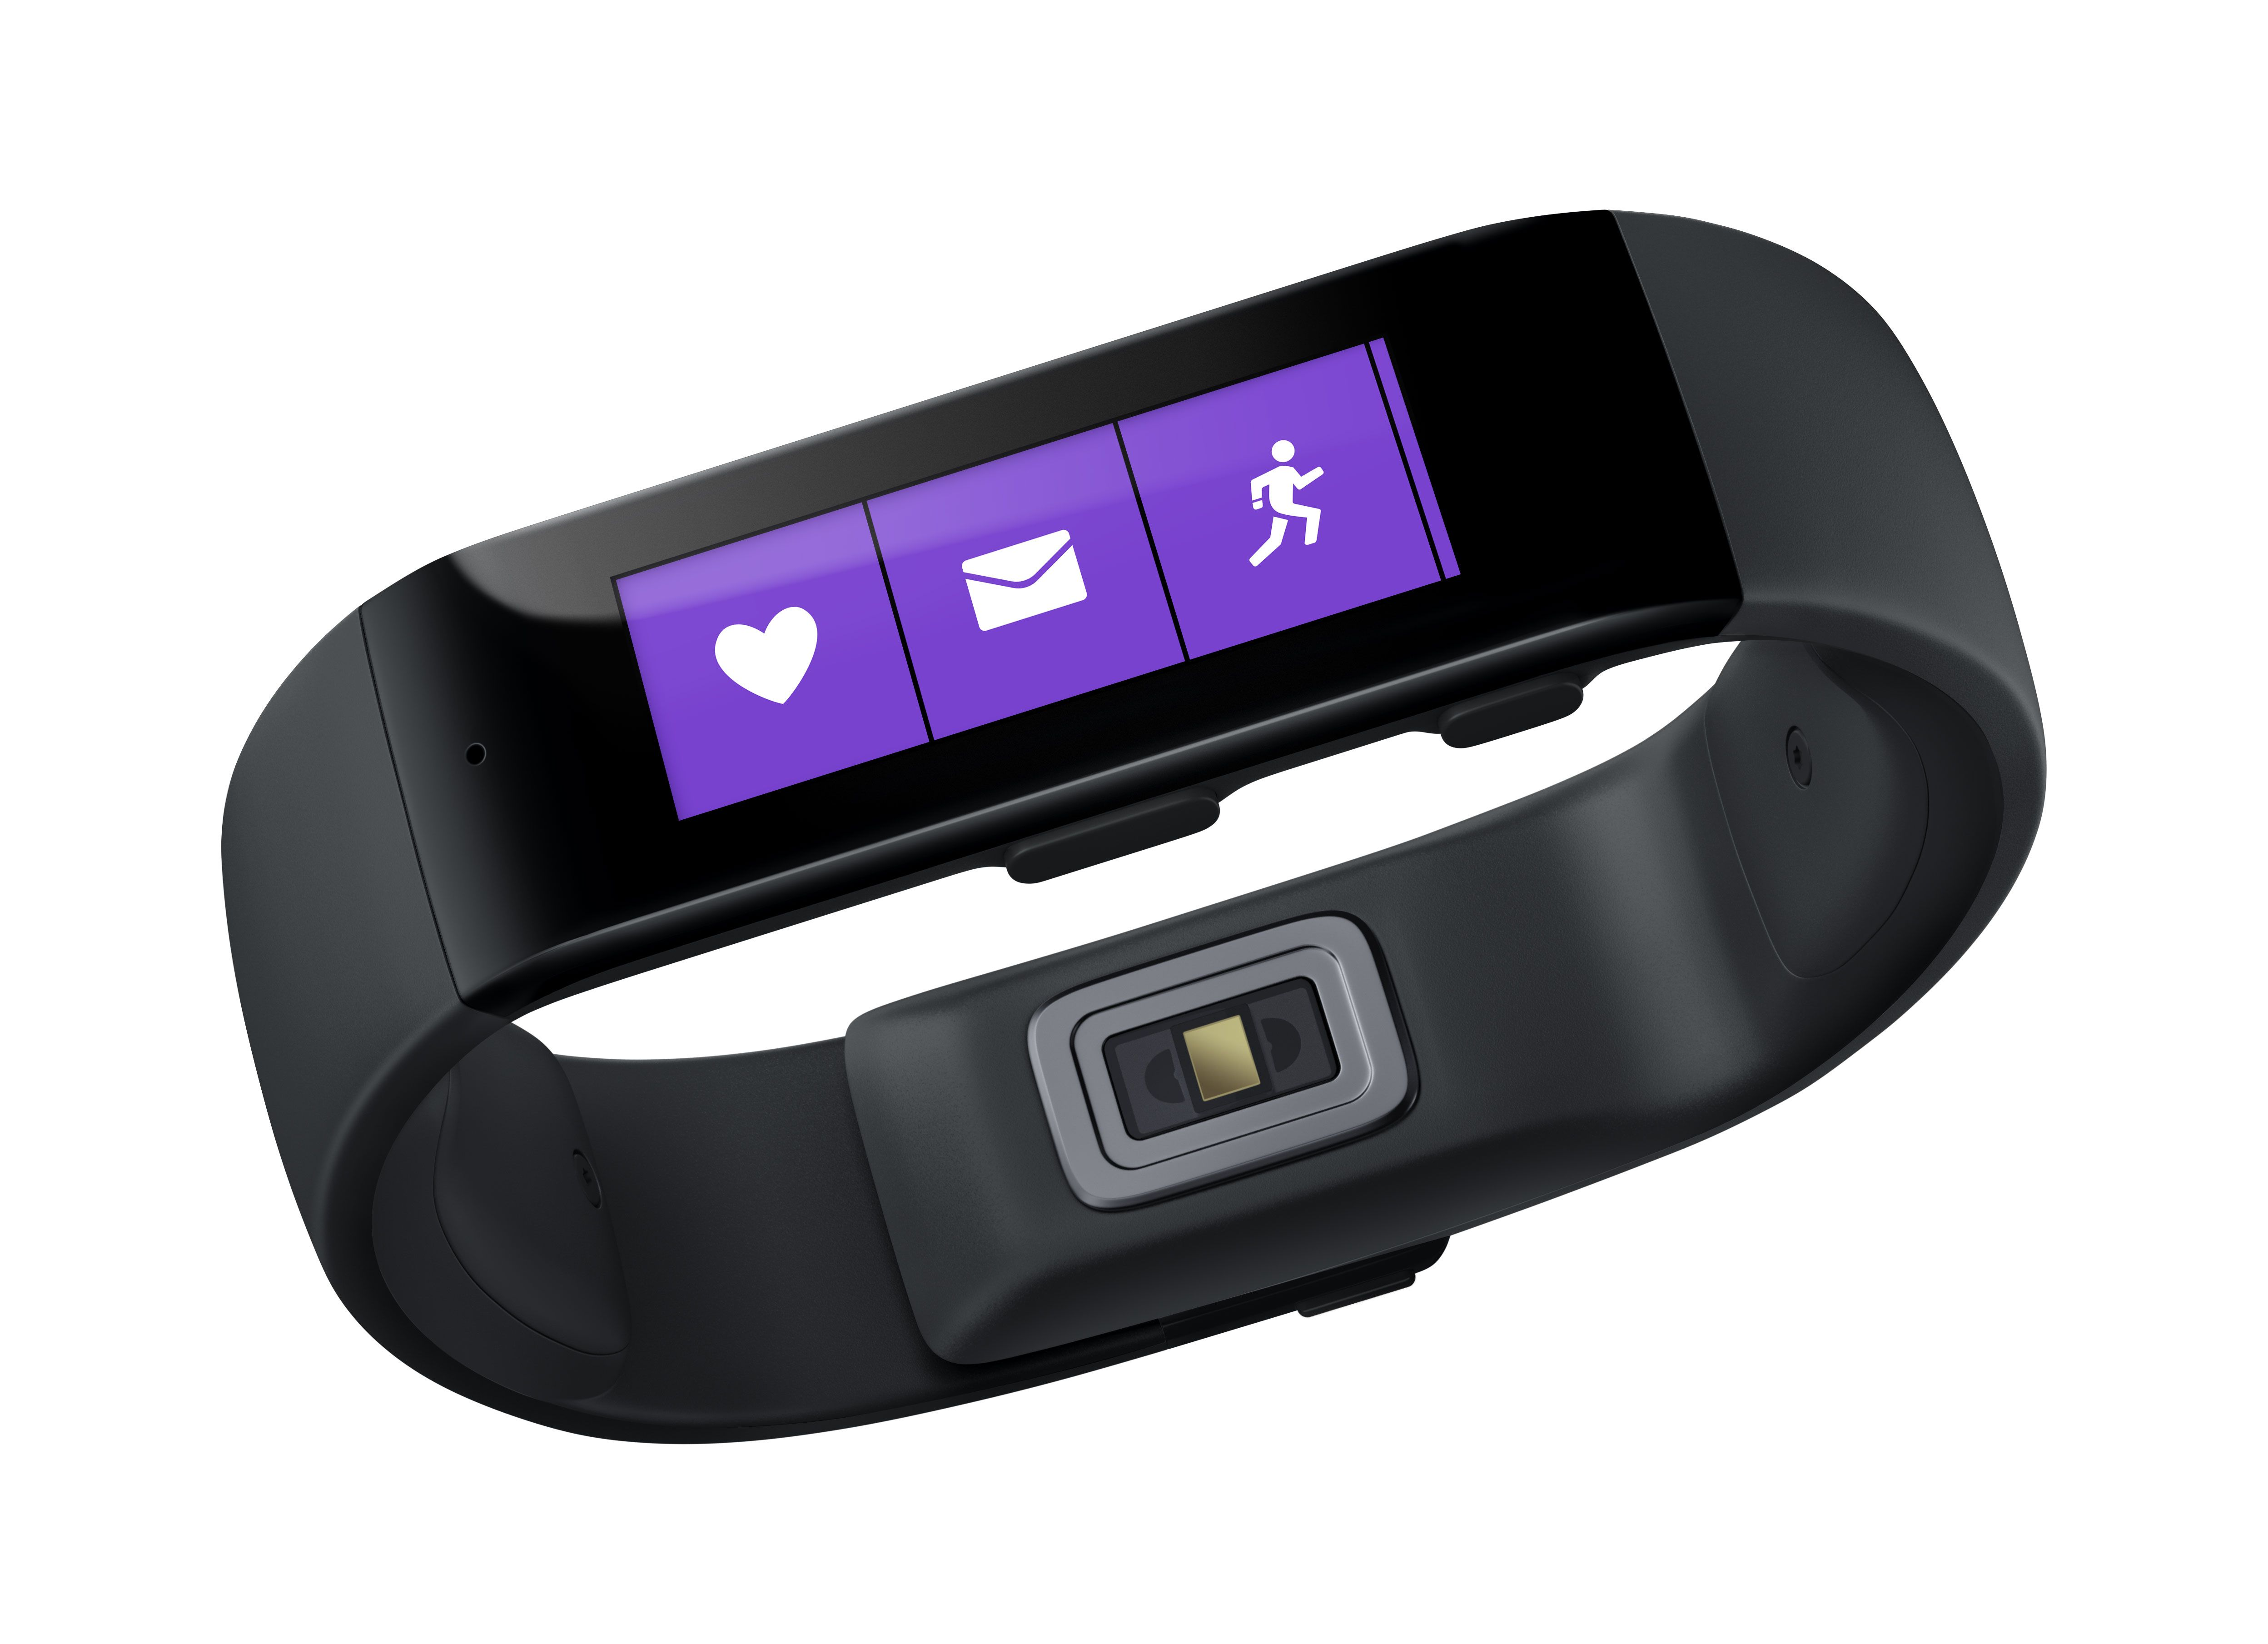 Third-party apps to join Microsoft's Band